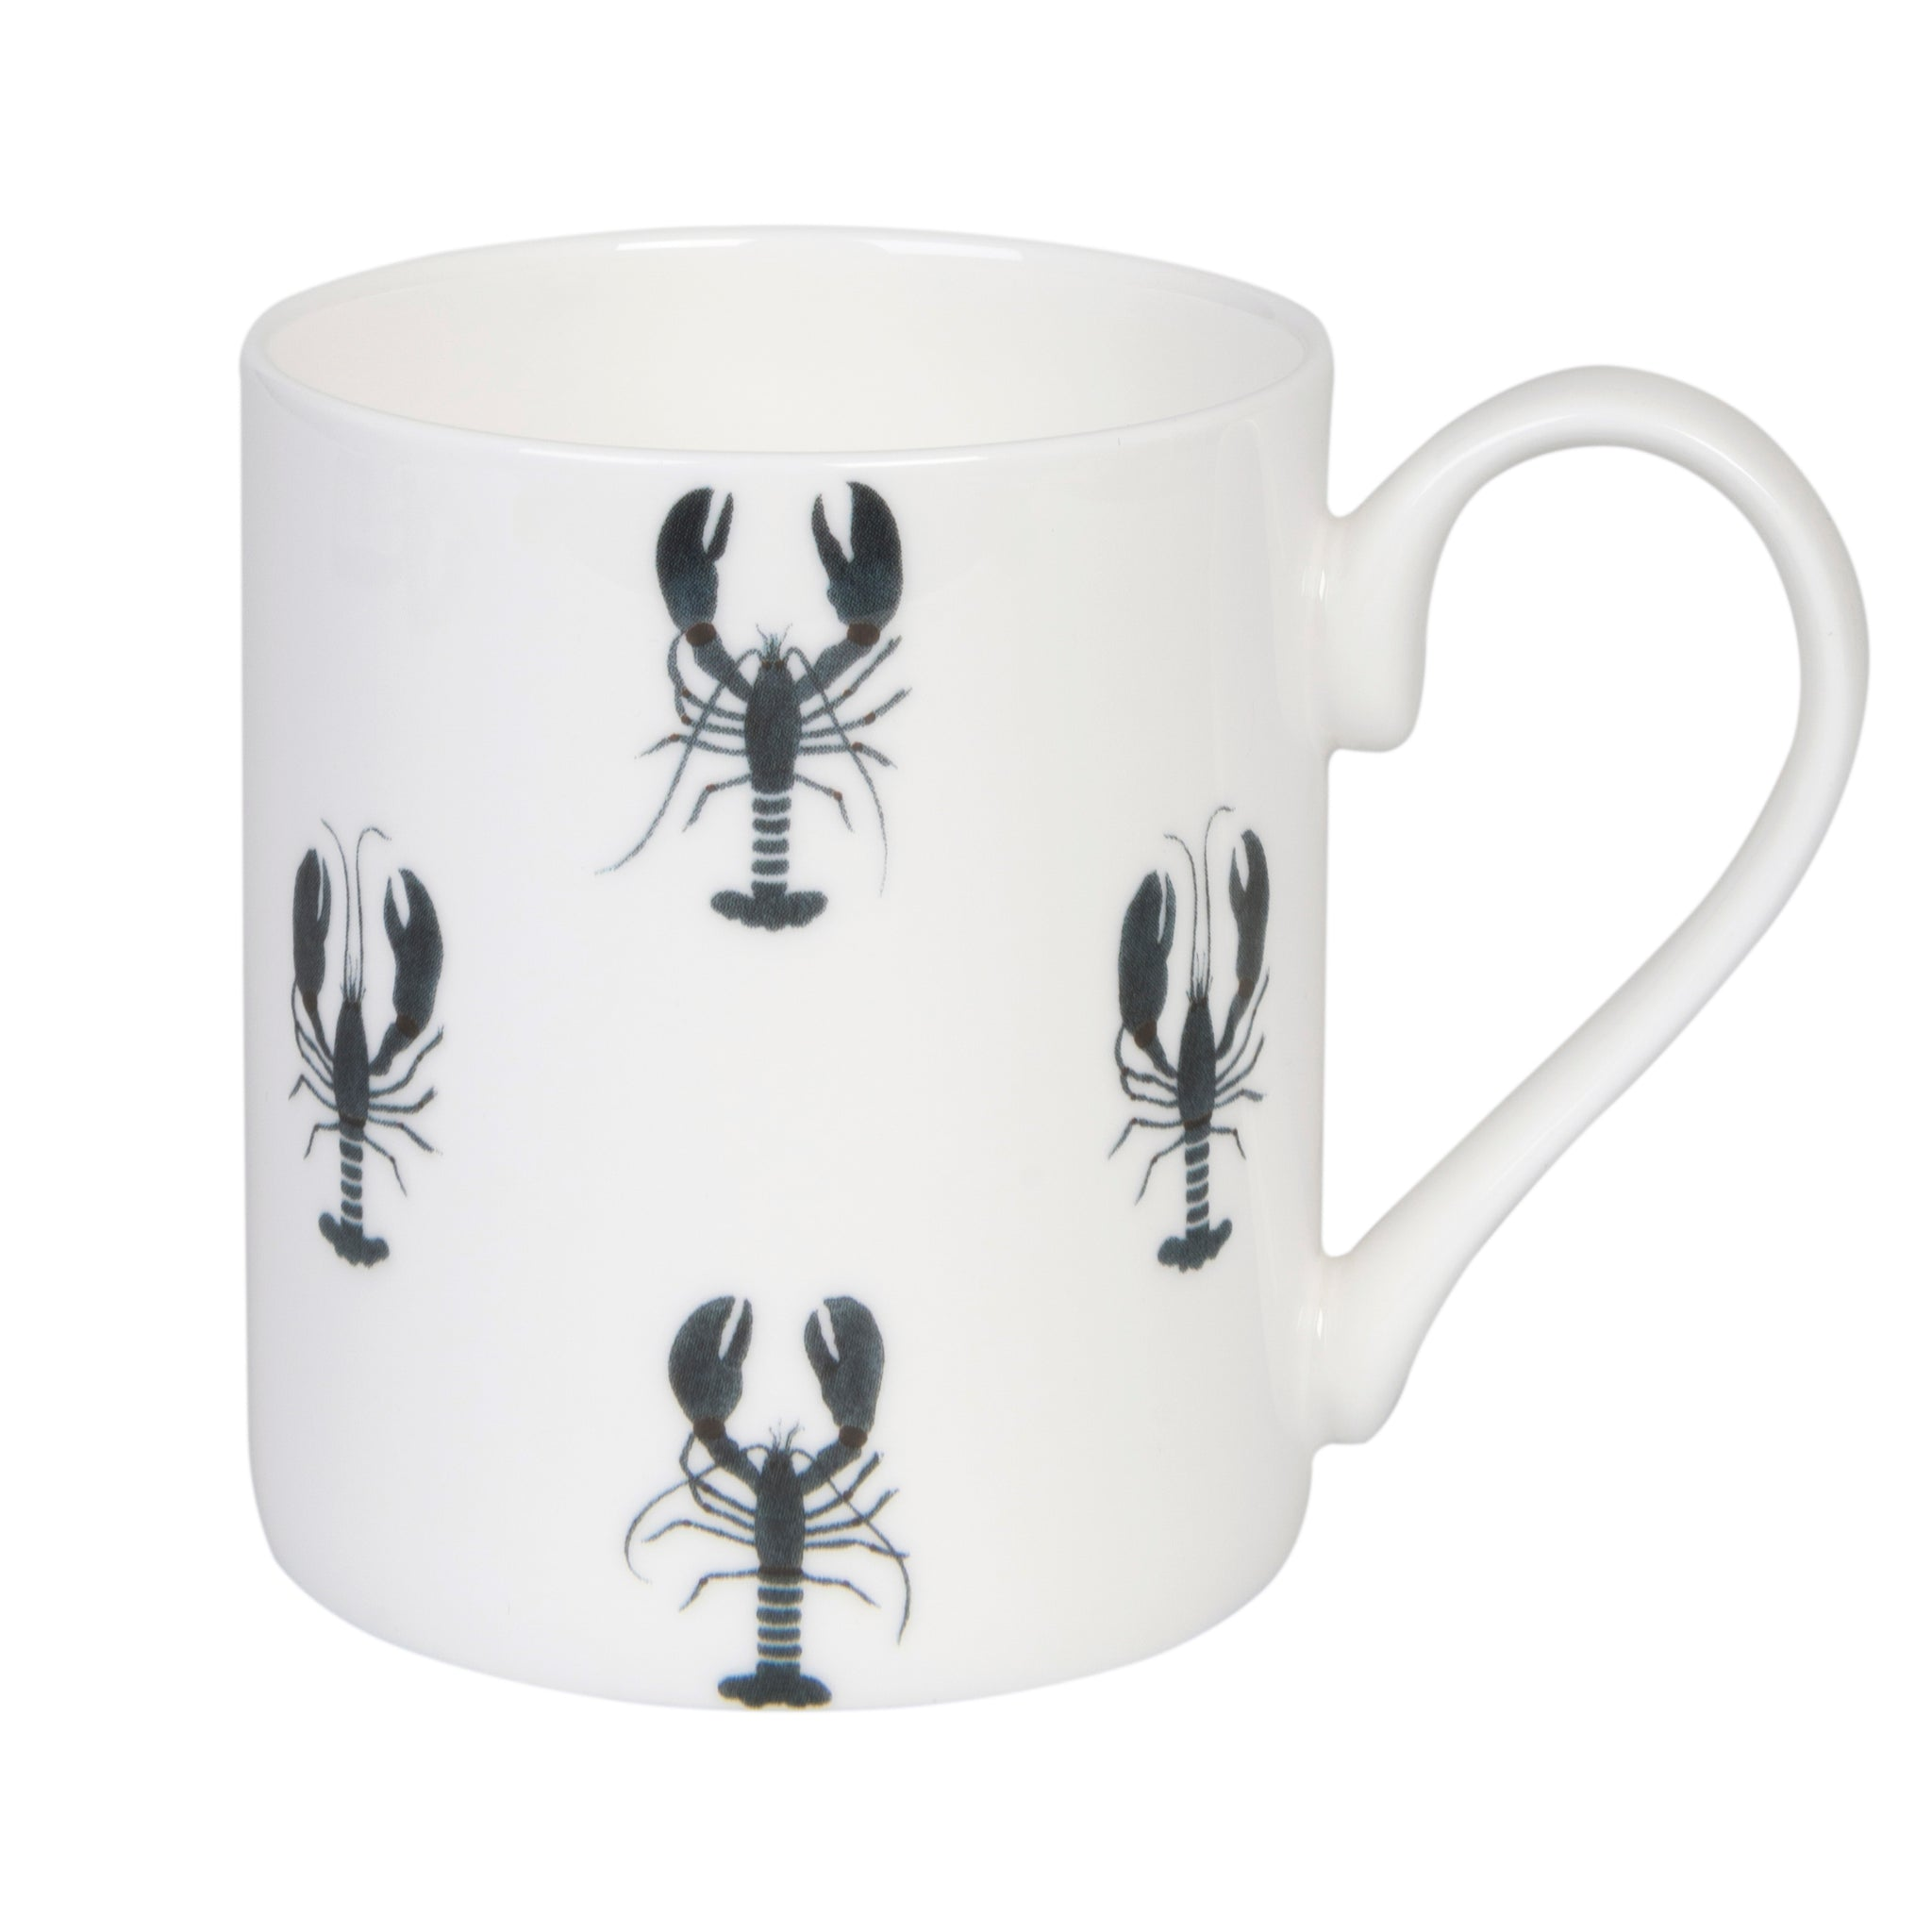 Fine Bone China Mug in Sophie Allport's Lobster Collection